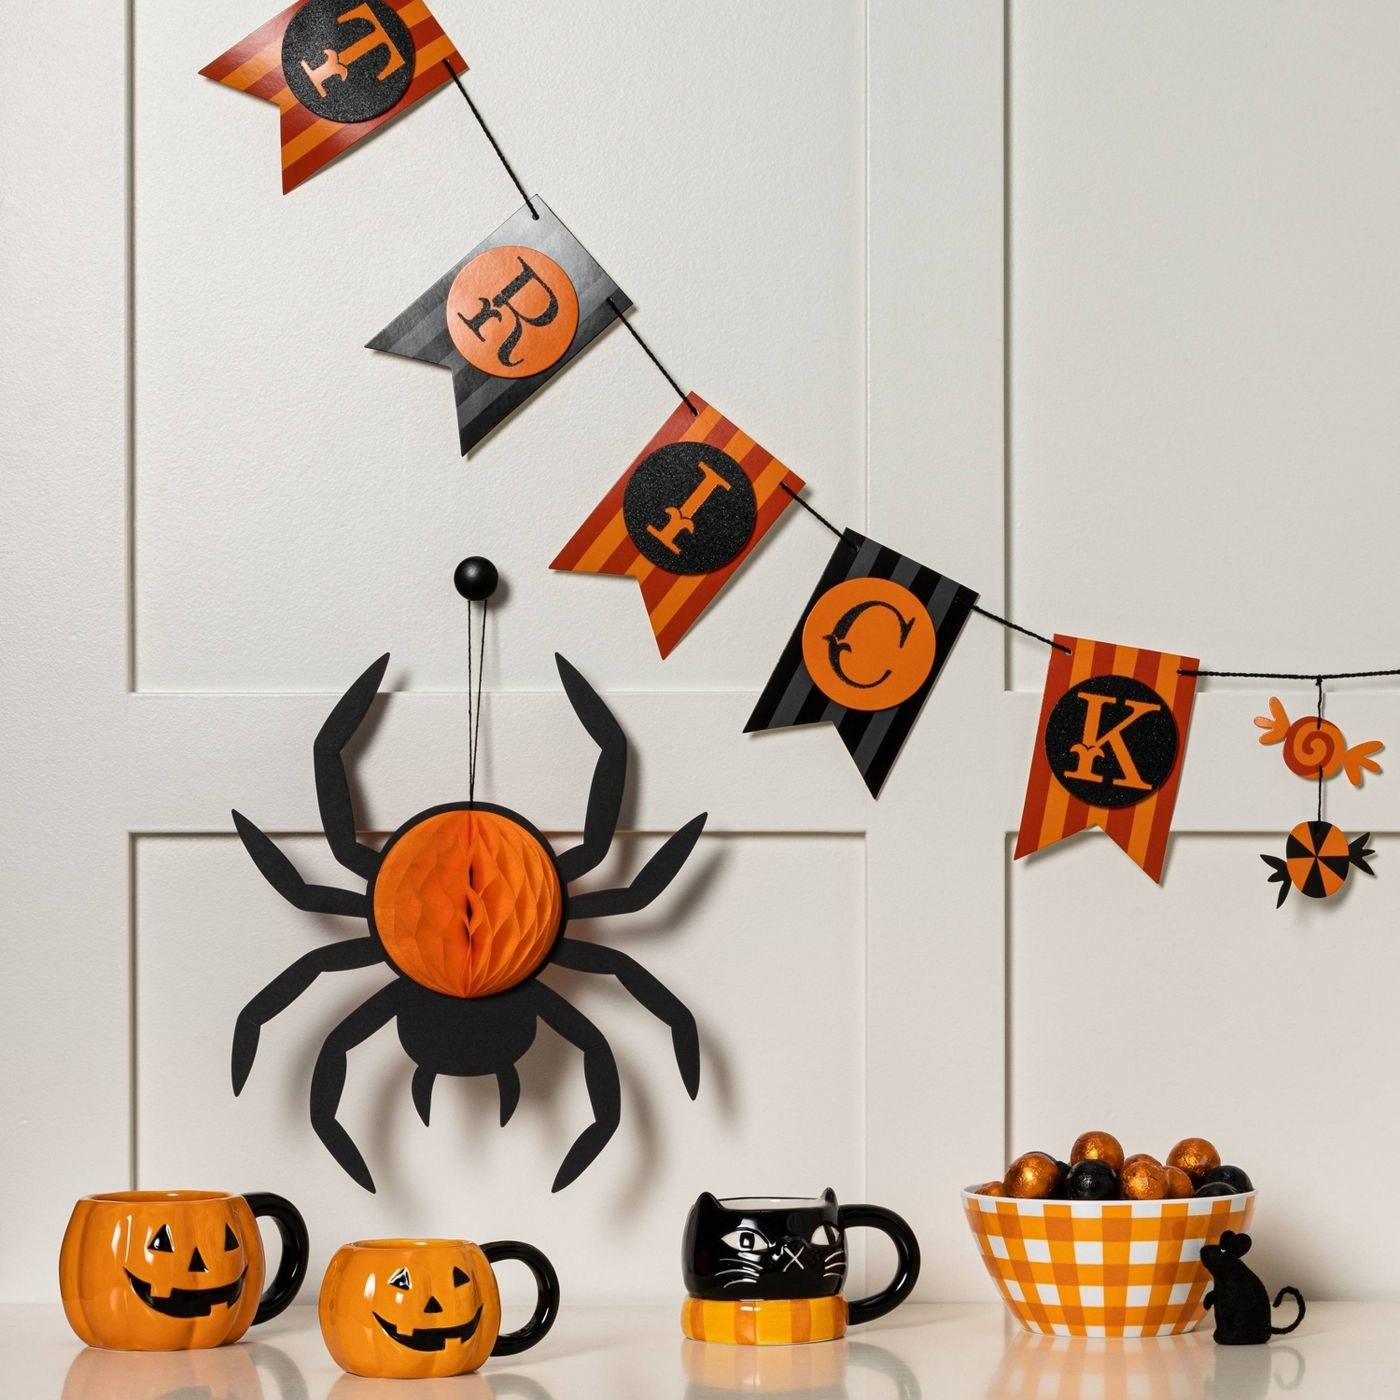 a hanging spider over a table with other halloween decor